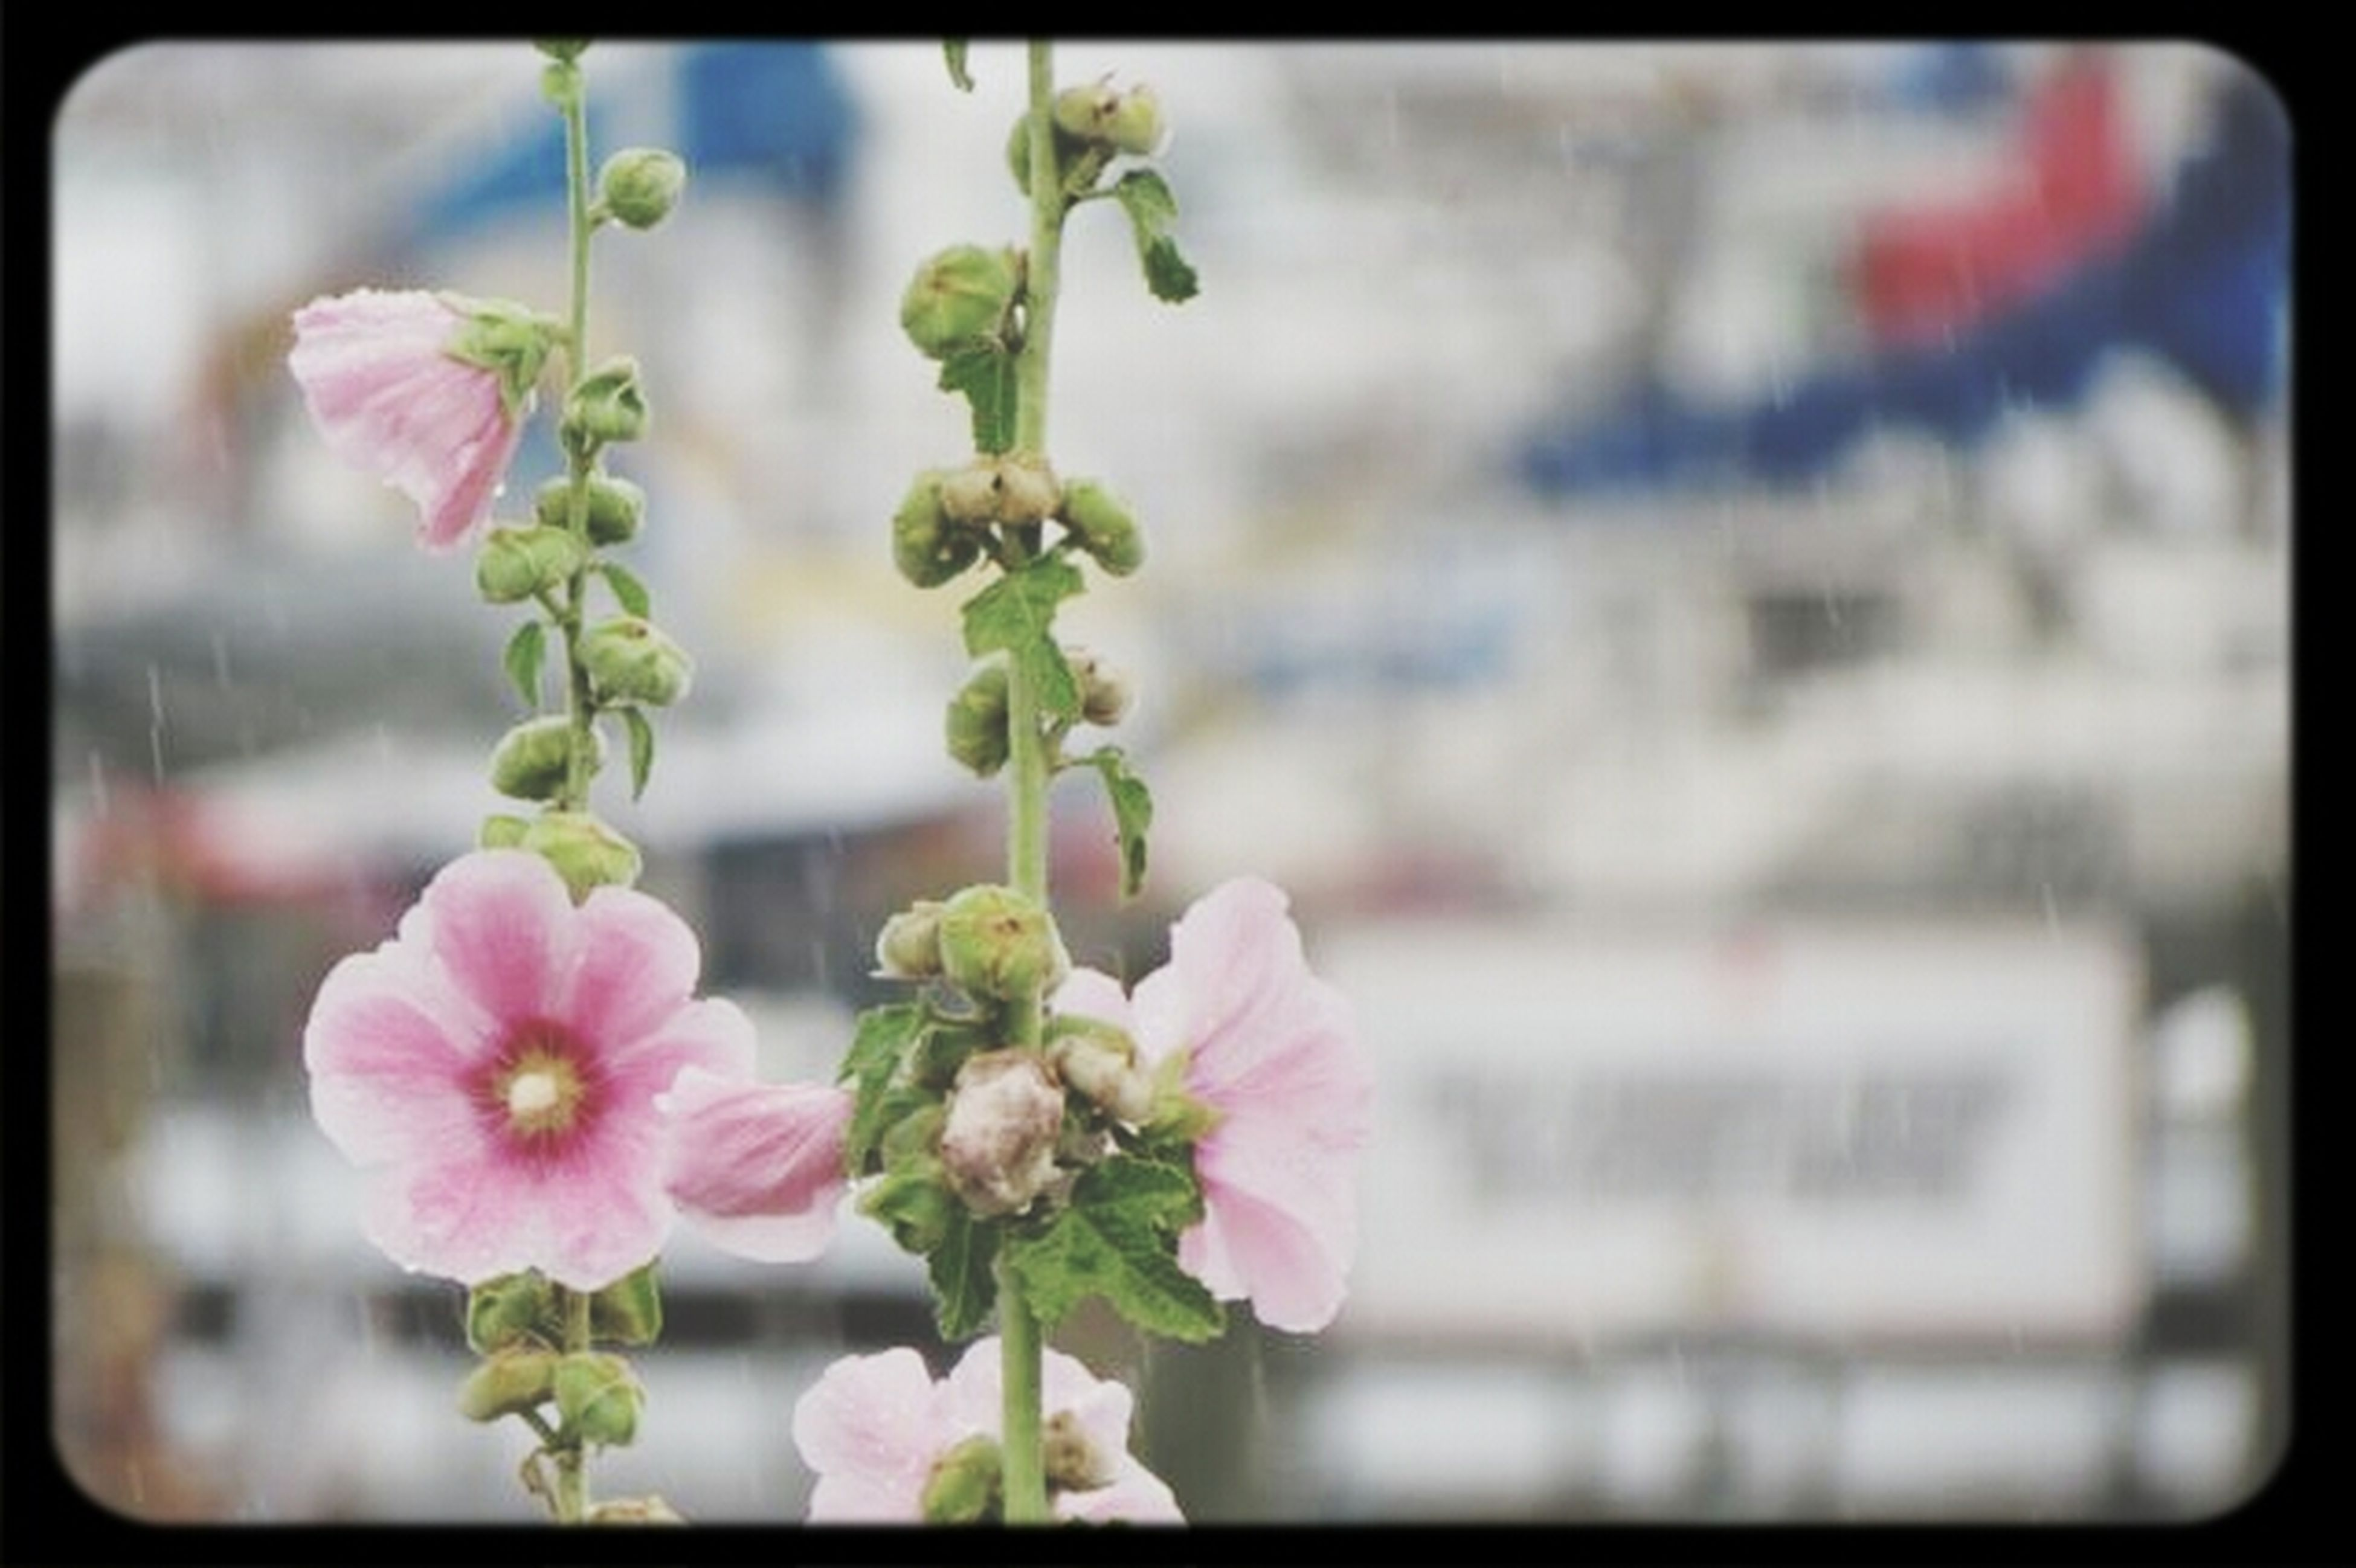 flower, transfer print, freshness, fragility, petal, growth, auto post production filter, pink color, flower head, close-up, focus on foreground, plant, beauty in nature, blooming, nature, in bloom, blossom, stem, day, bud